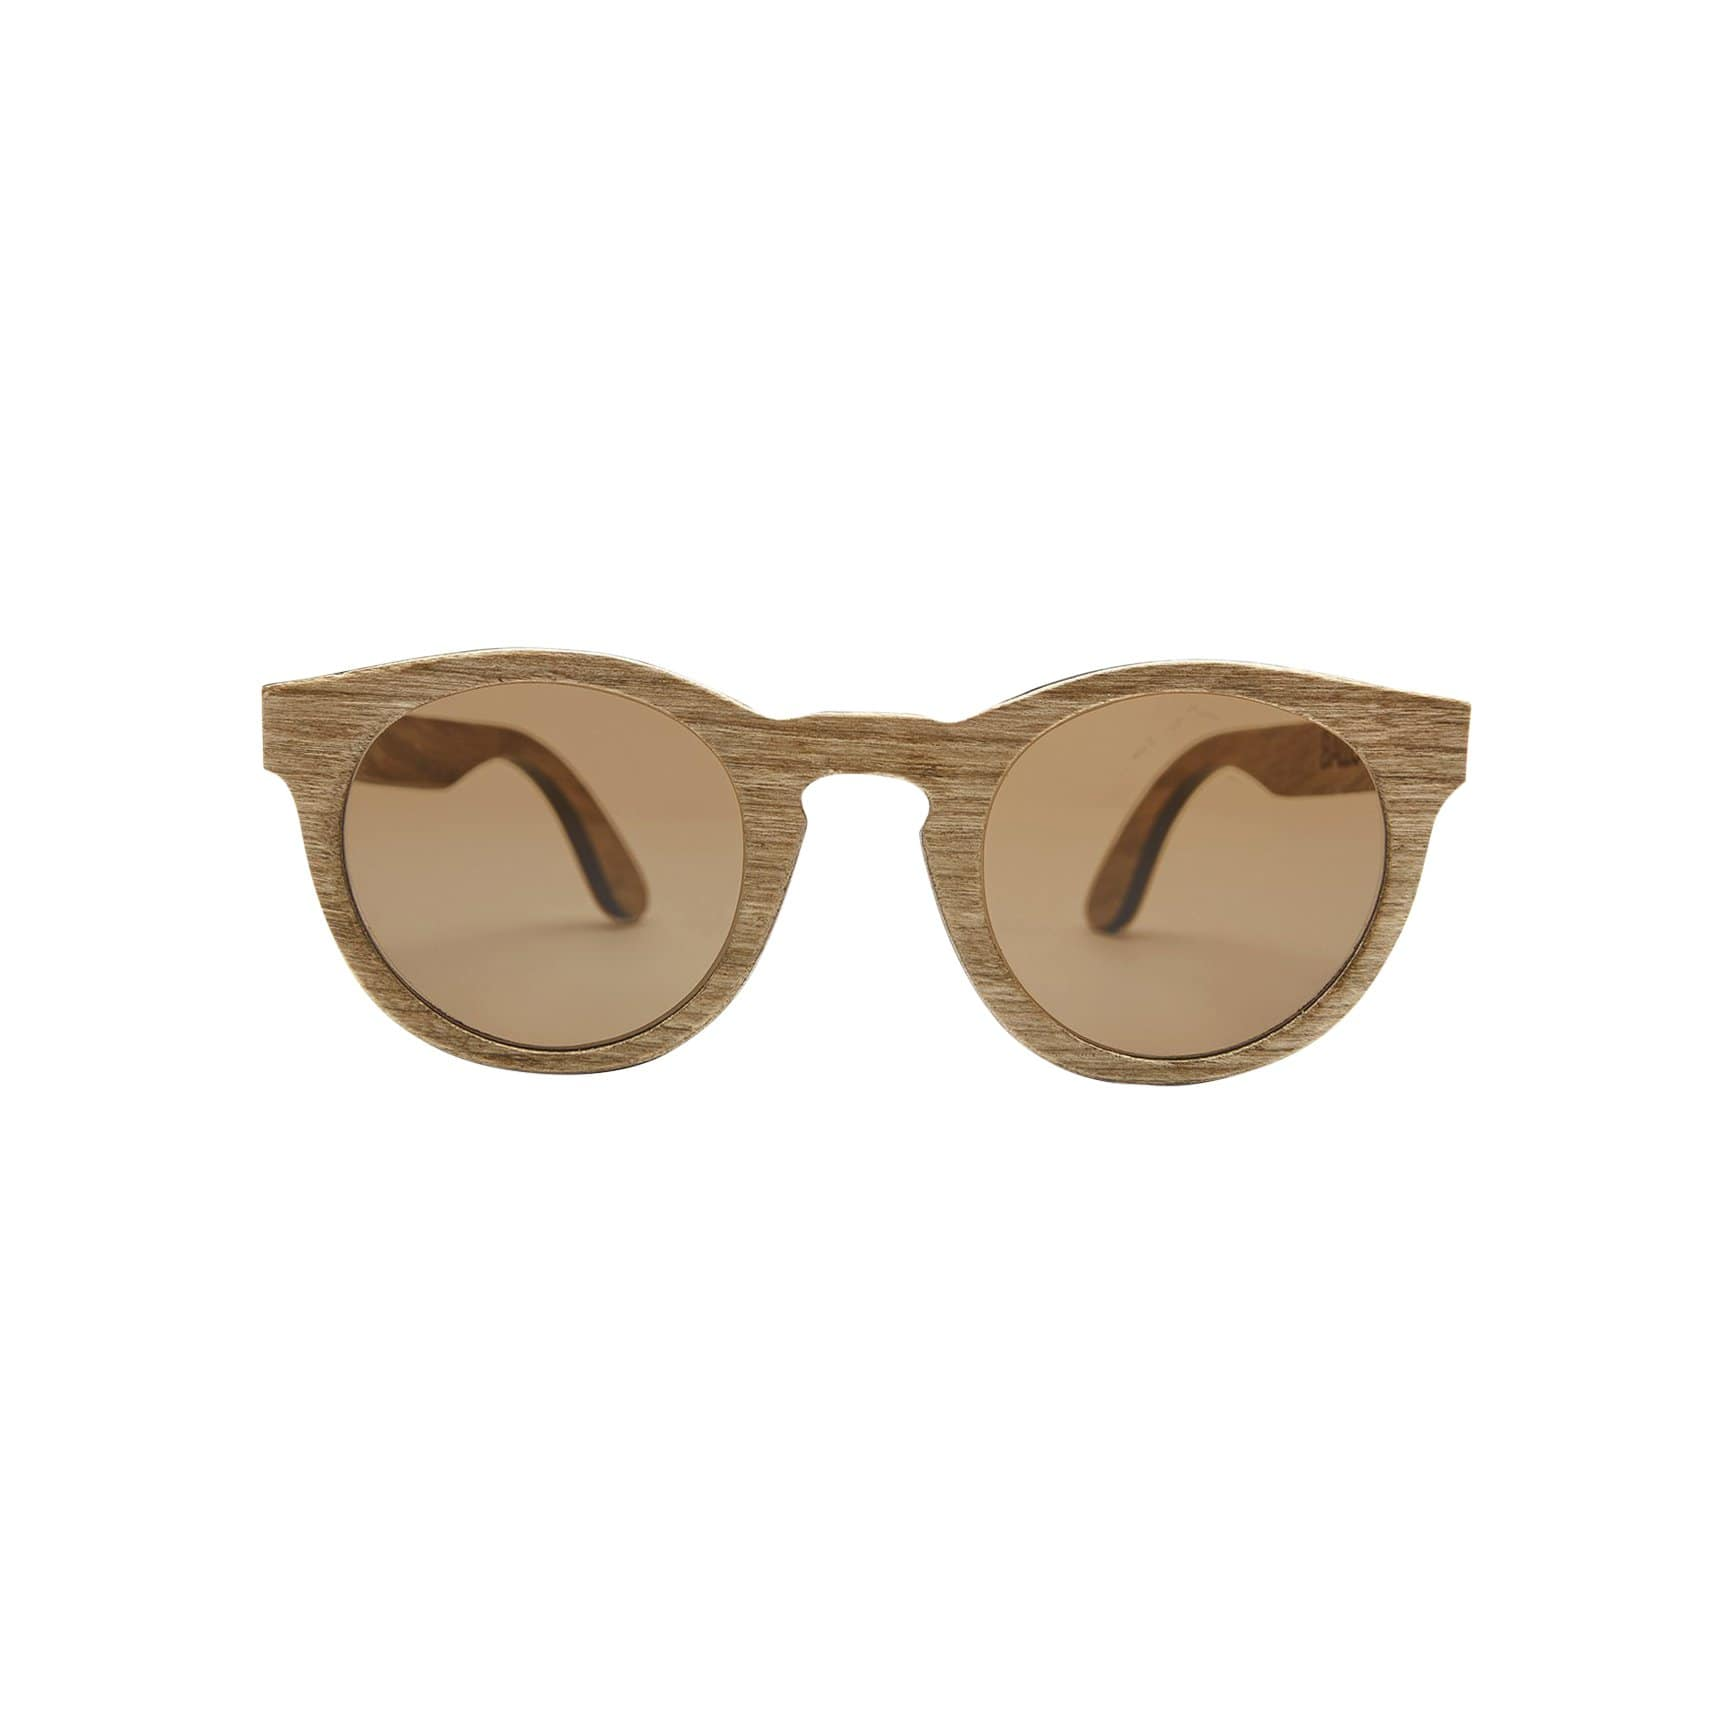 Ballo Sunglasses + Eyewear Gallo with Cherry Wood